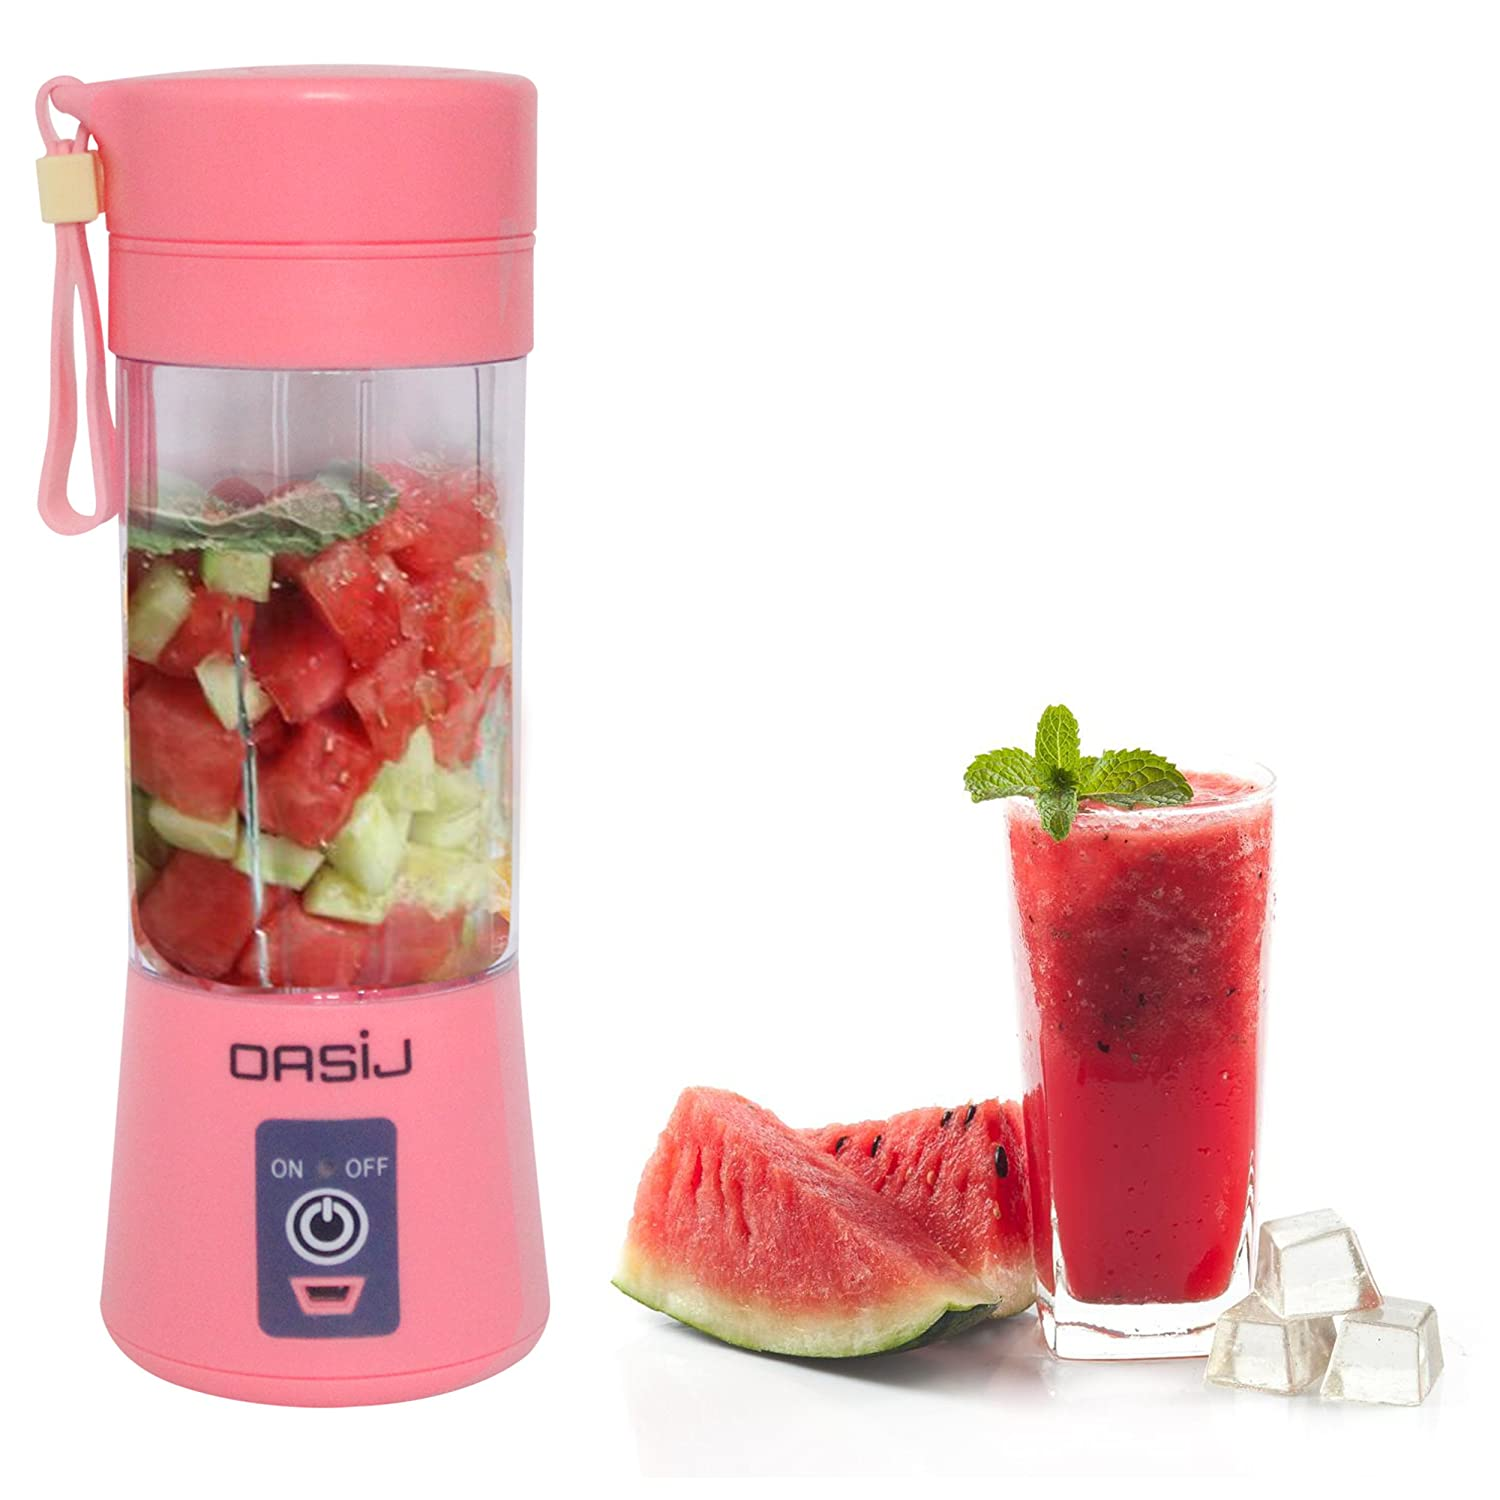 OASIJ Portable USB Rechargeable Juicer and Blender 380ml. Personal Sized Fruit and Vegetable Mixing Juicer Cup. (Blue)